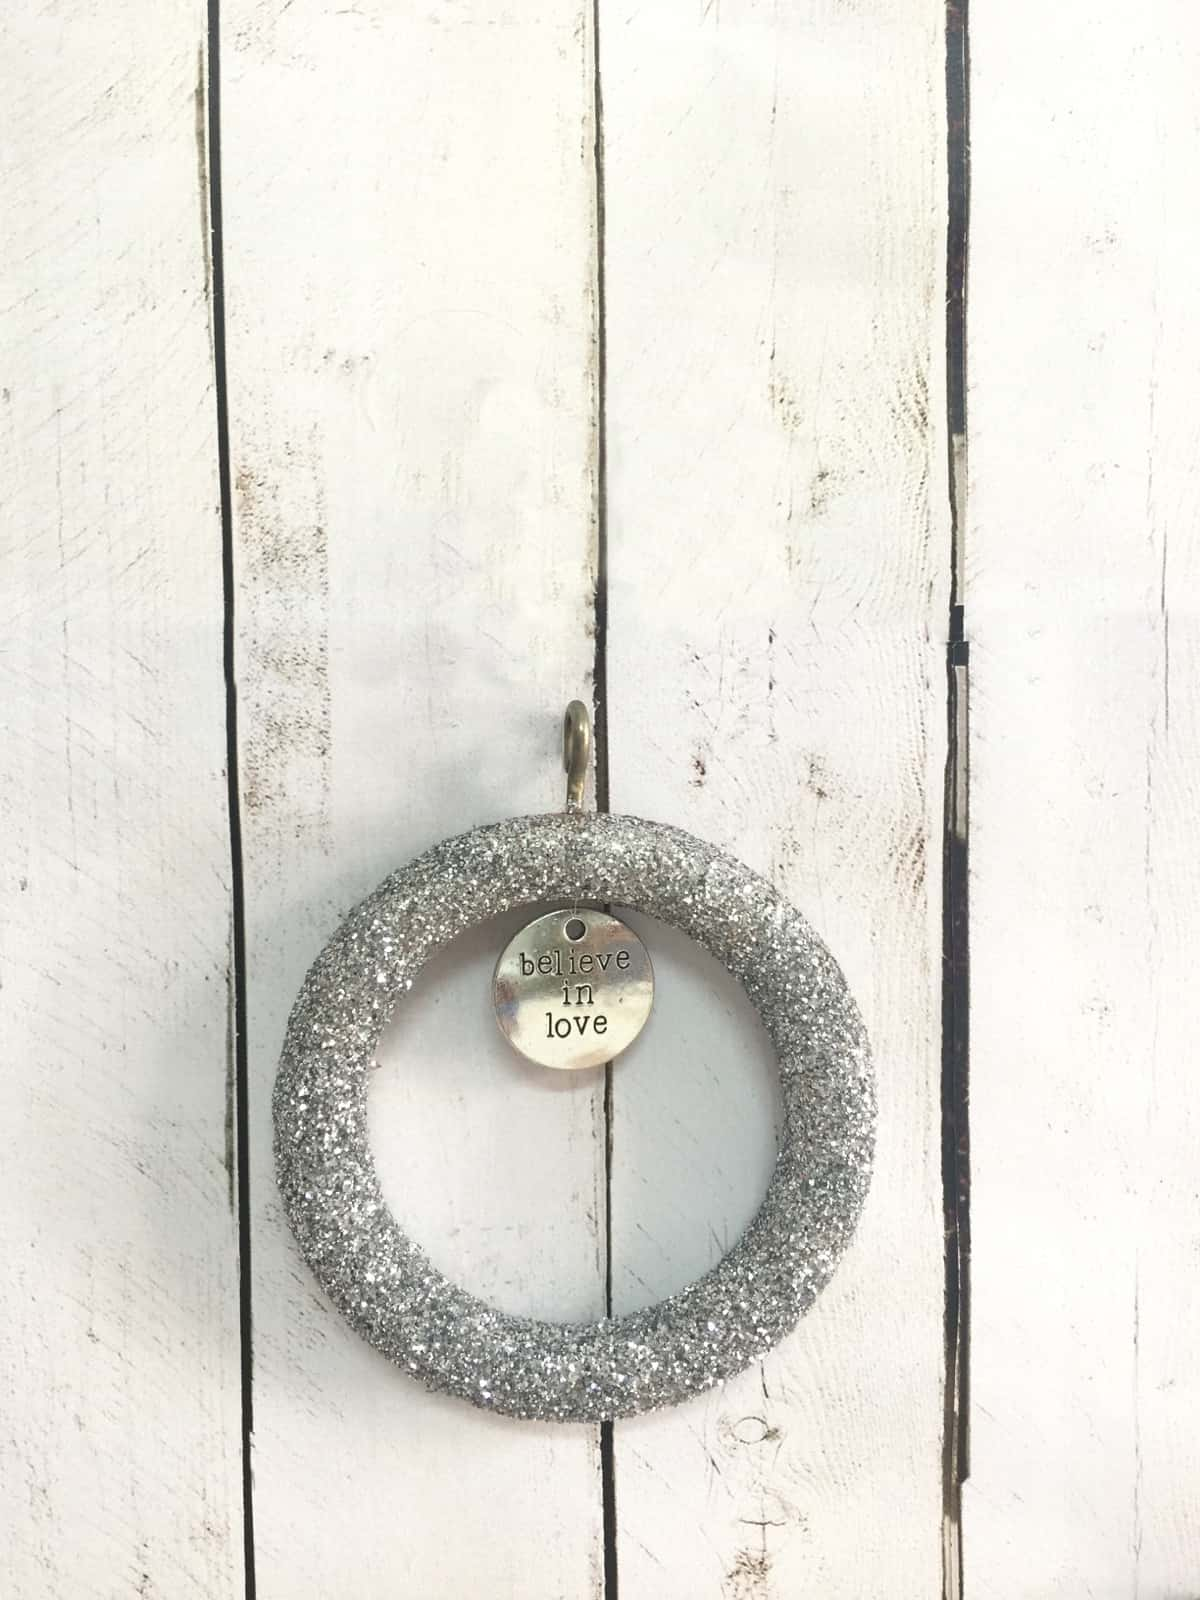 How to make a curtain ring Christmas ornament with glitter · Via www.sweethings.net